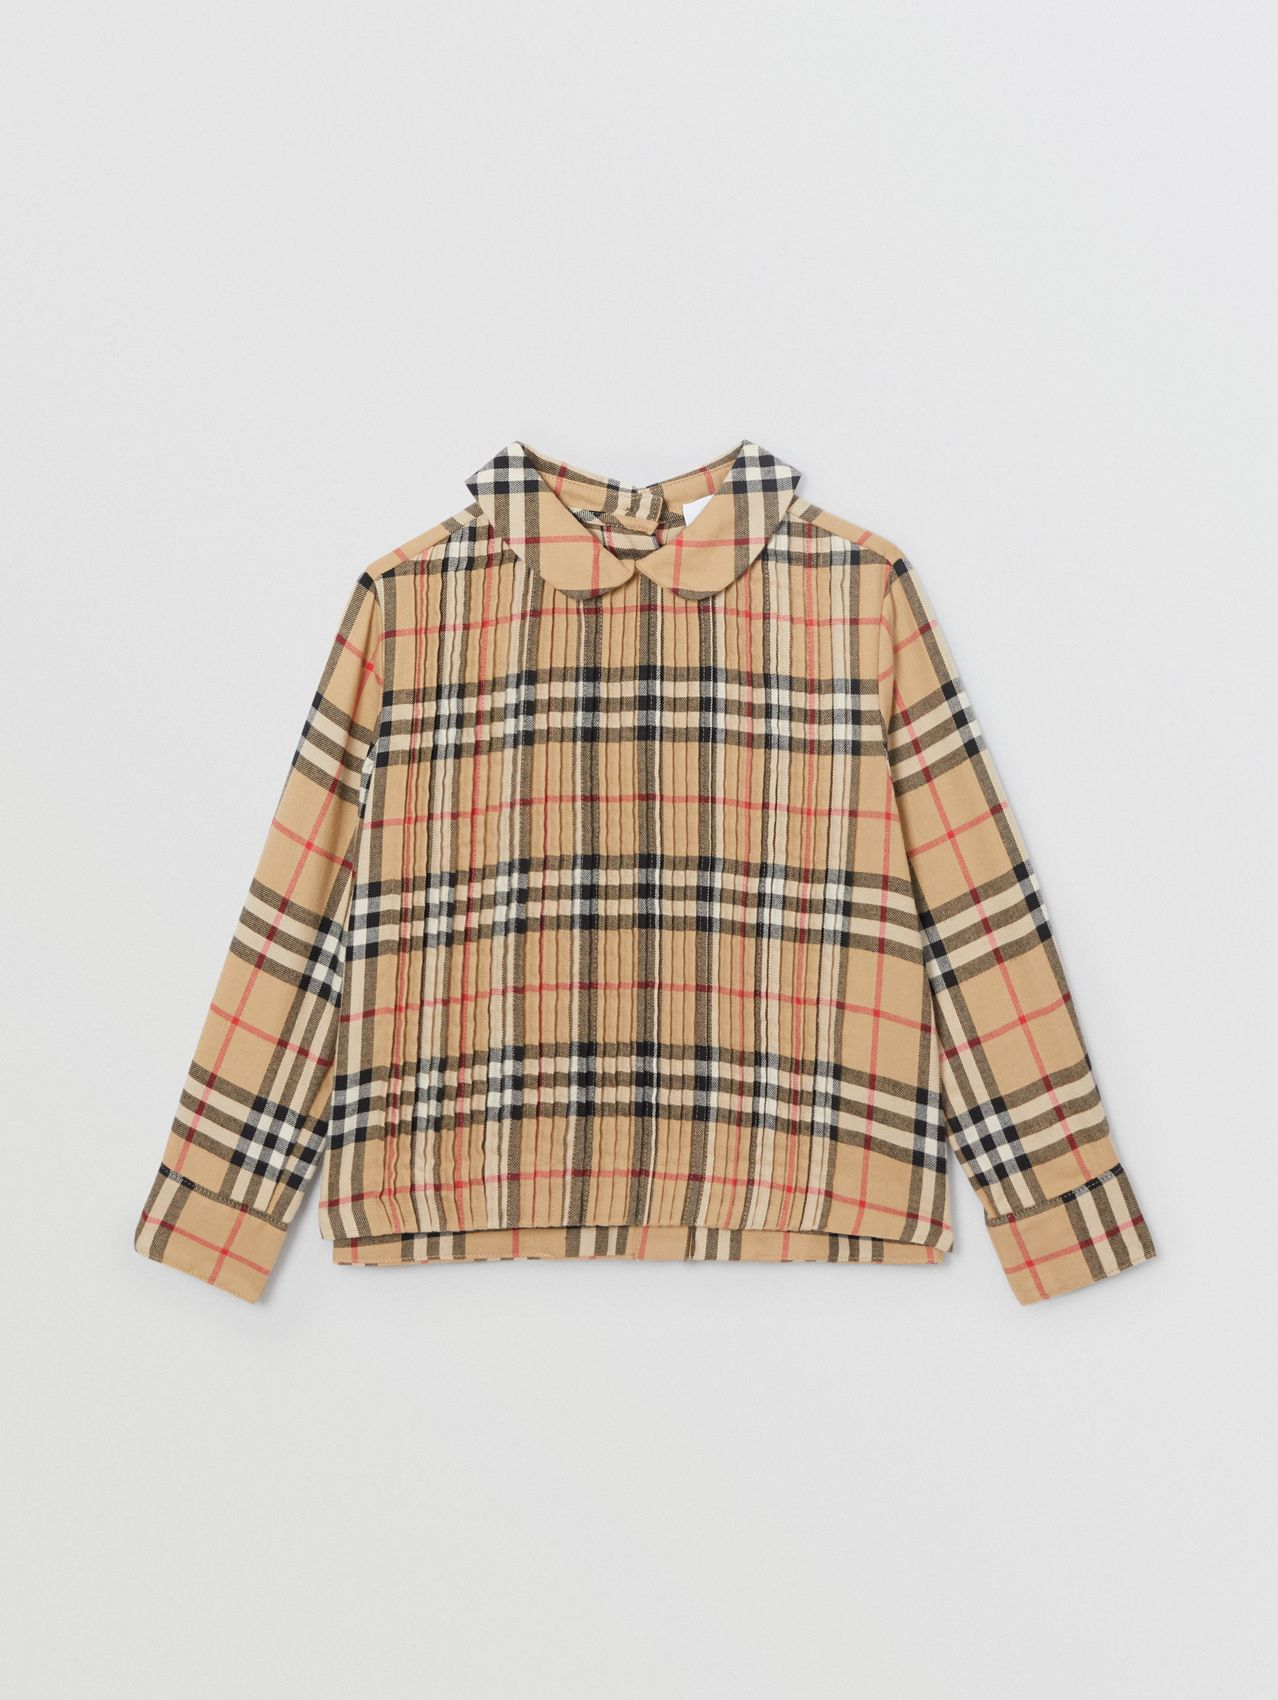 Pintuck Detail Vintage Check Cotton Twill Blouse (Archive Beige)